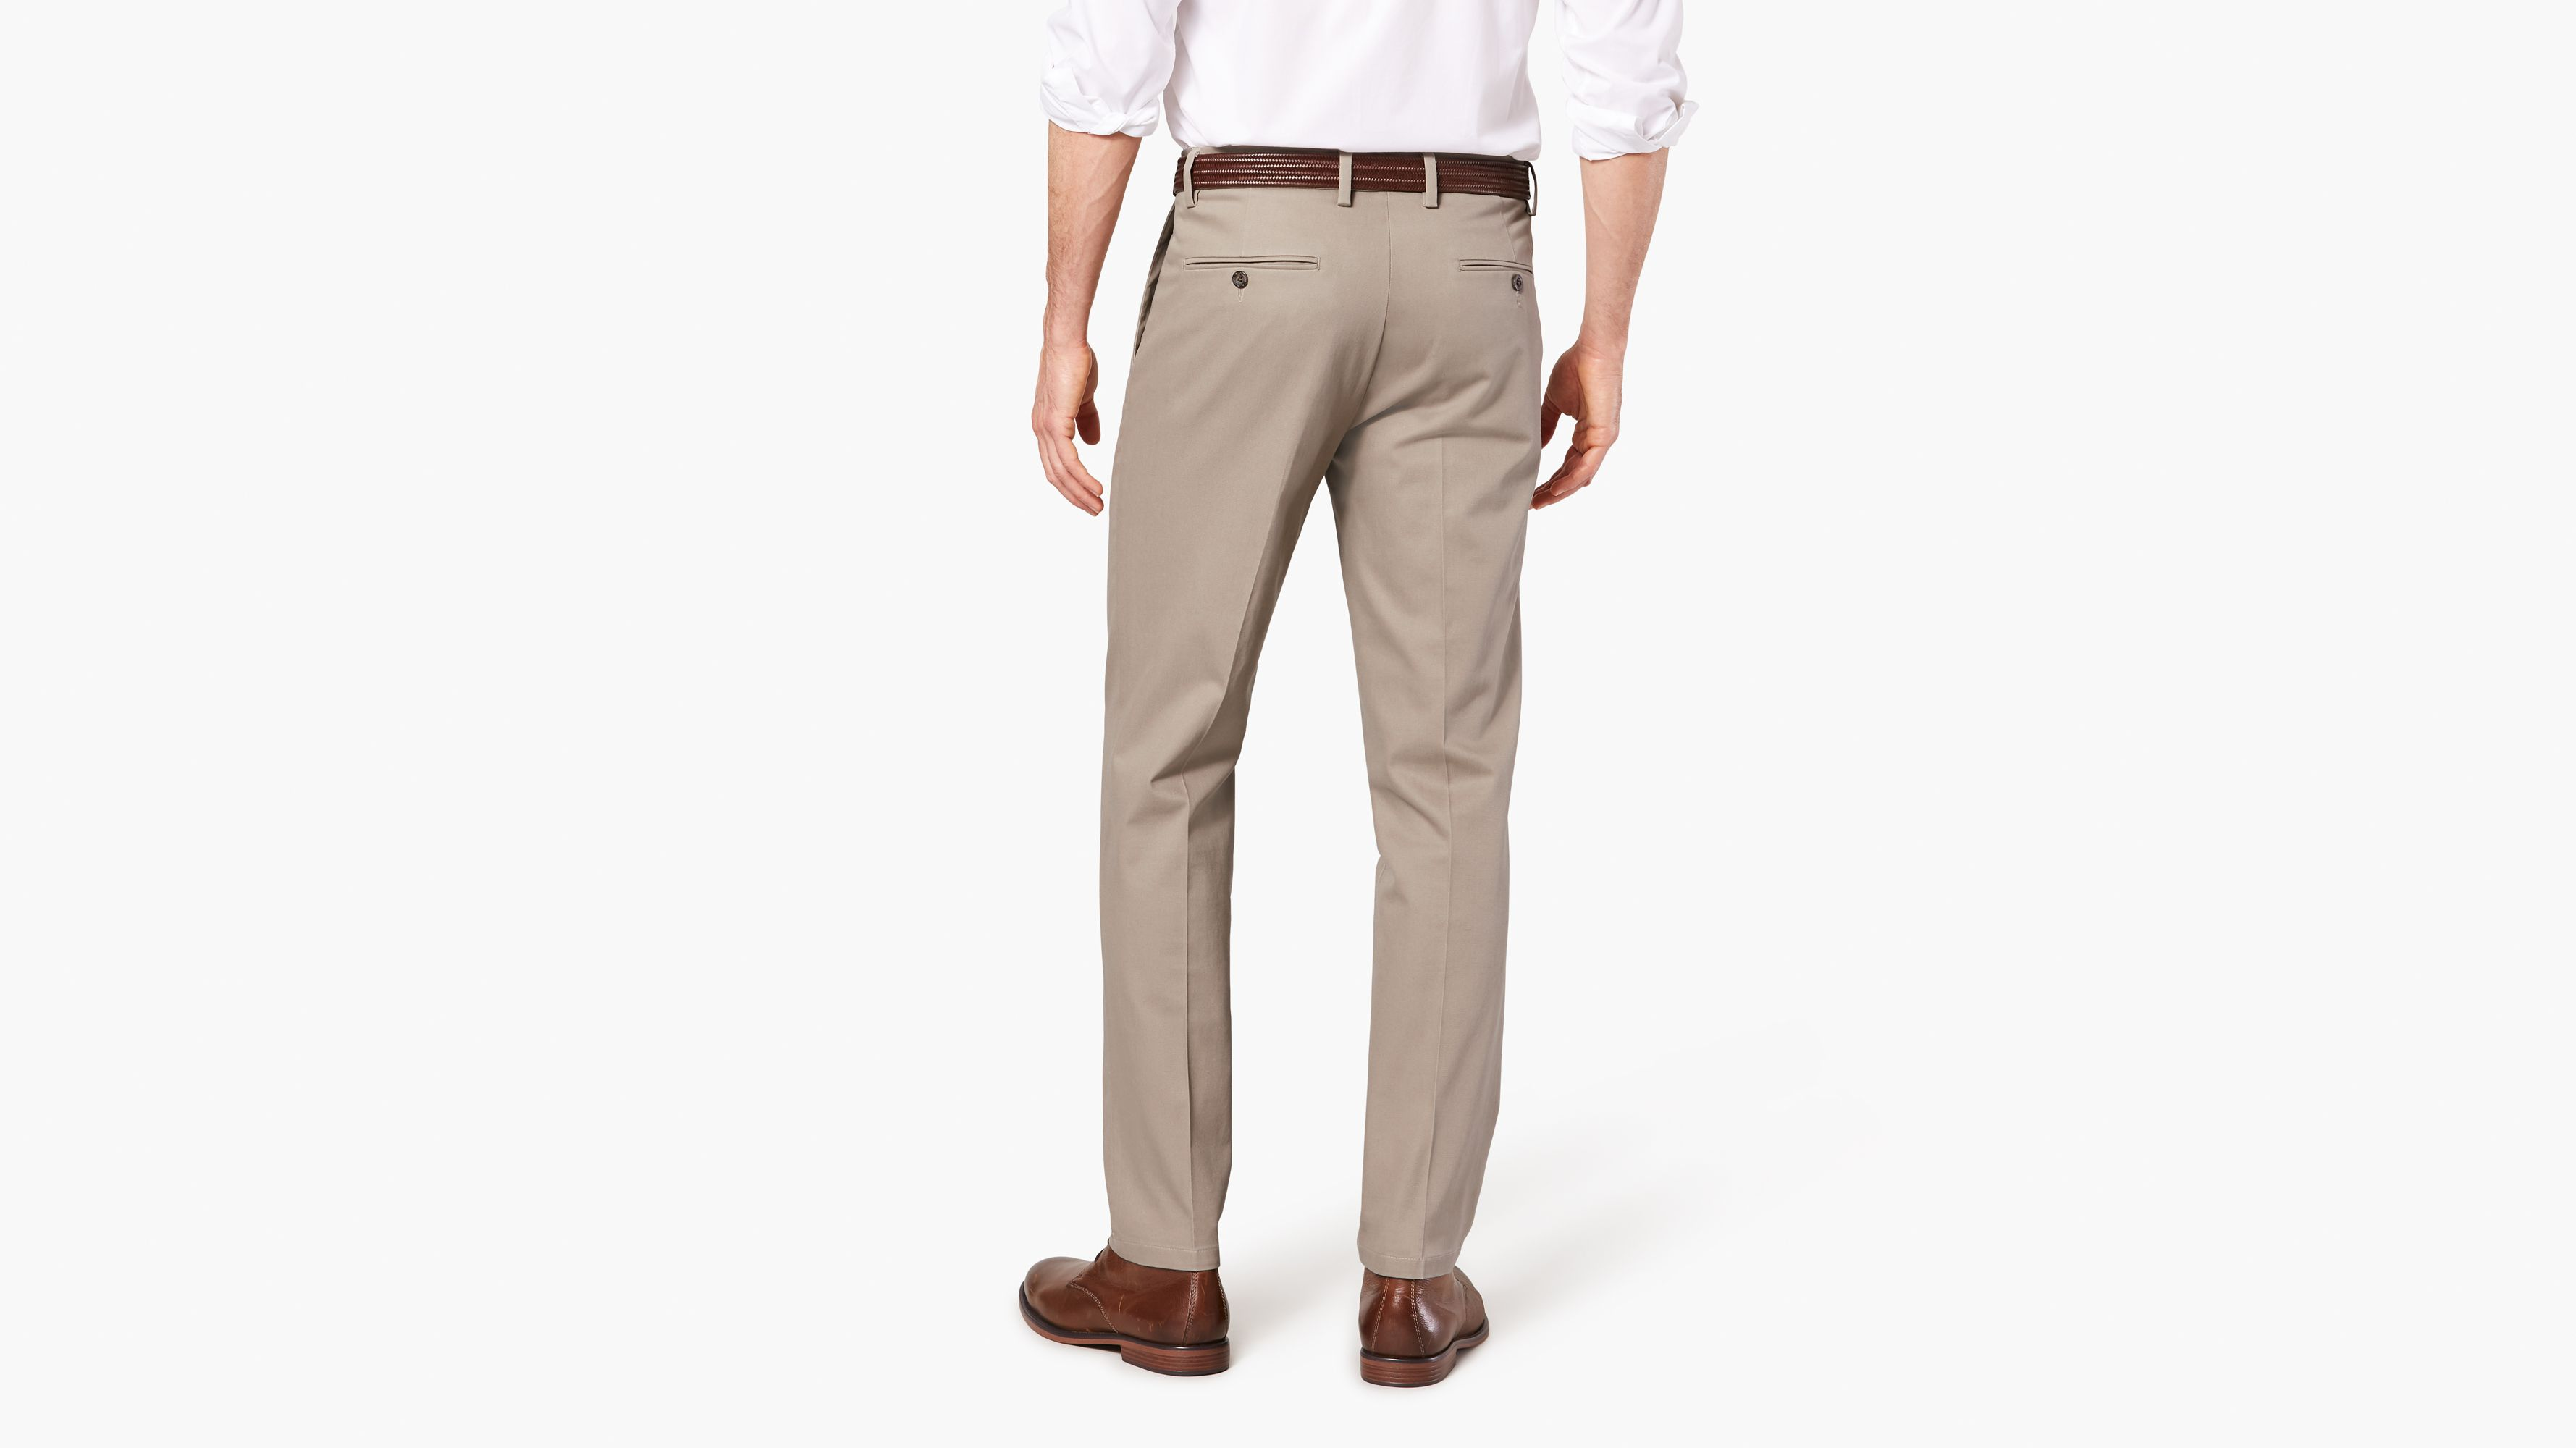 9bbfe071 Signature Stretch Khaki Pants, Étroite Tapered Fit - Tan 477850010 | Dockers®  CA